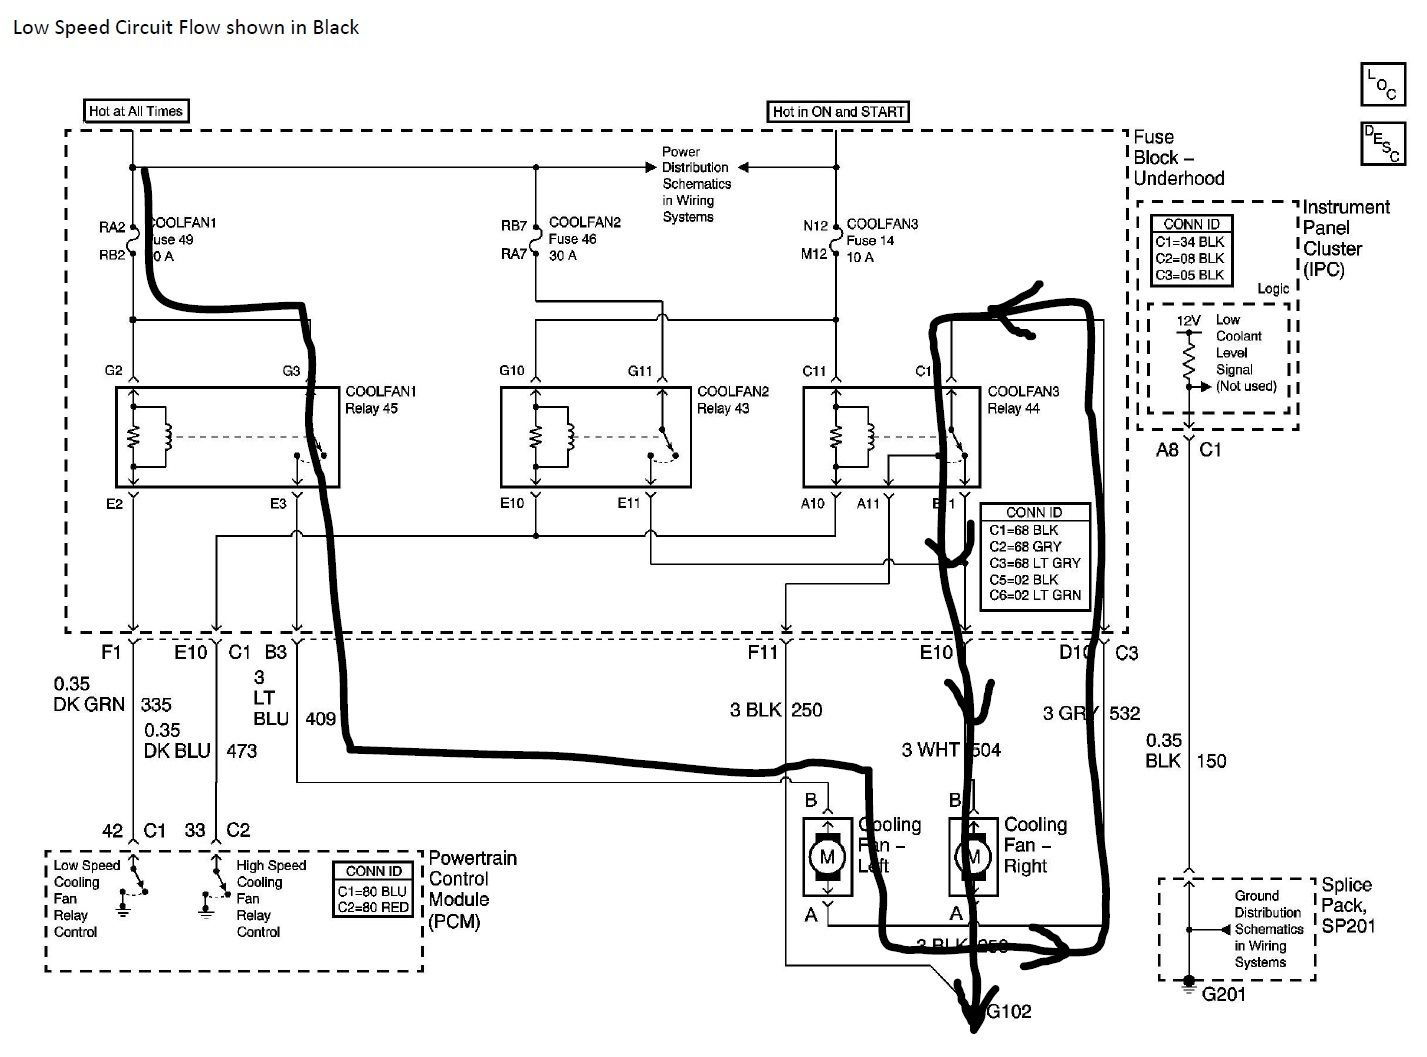 68 CORVETTE    WIRING       DIAGRAM     Auto Electrical    Wiring       Diagram